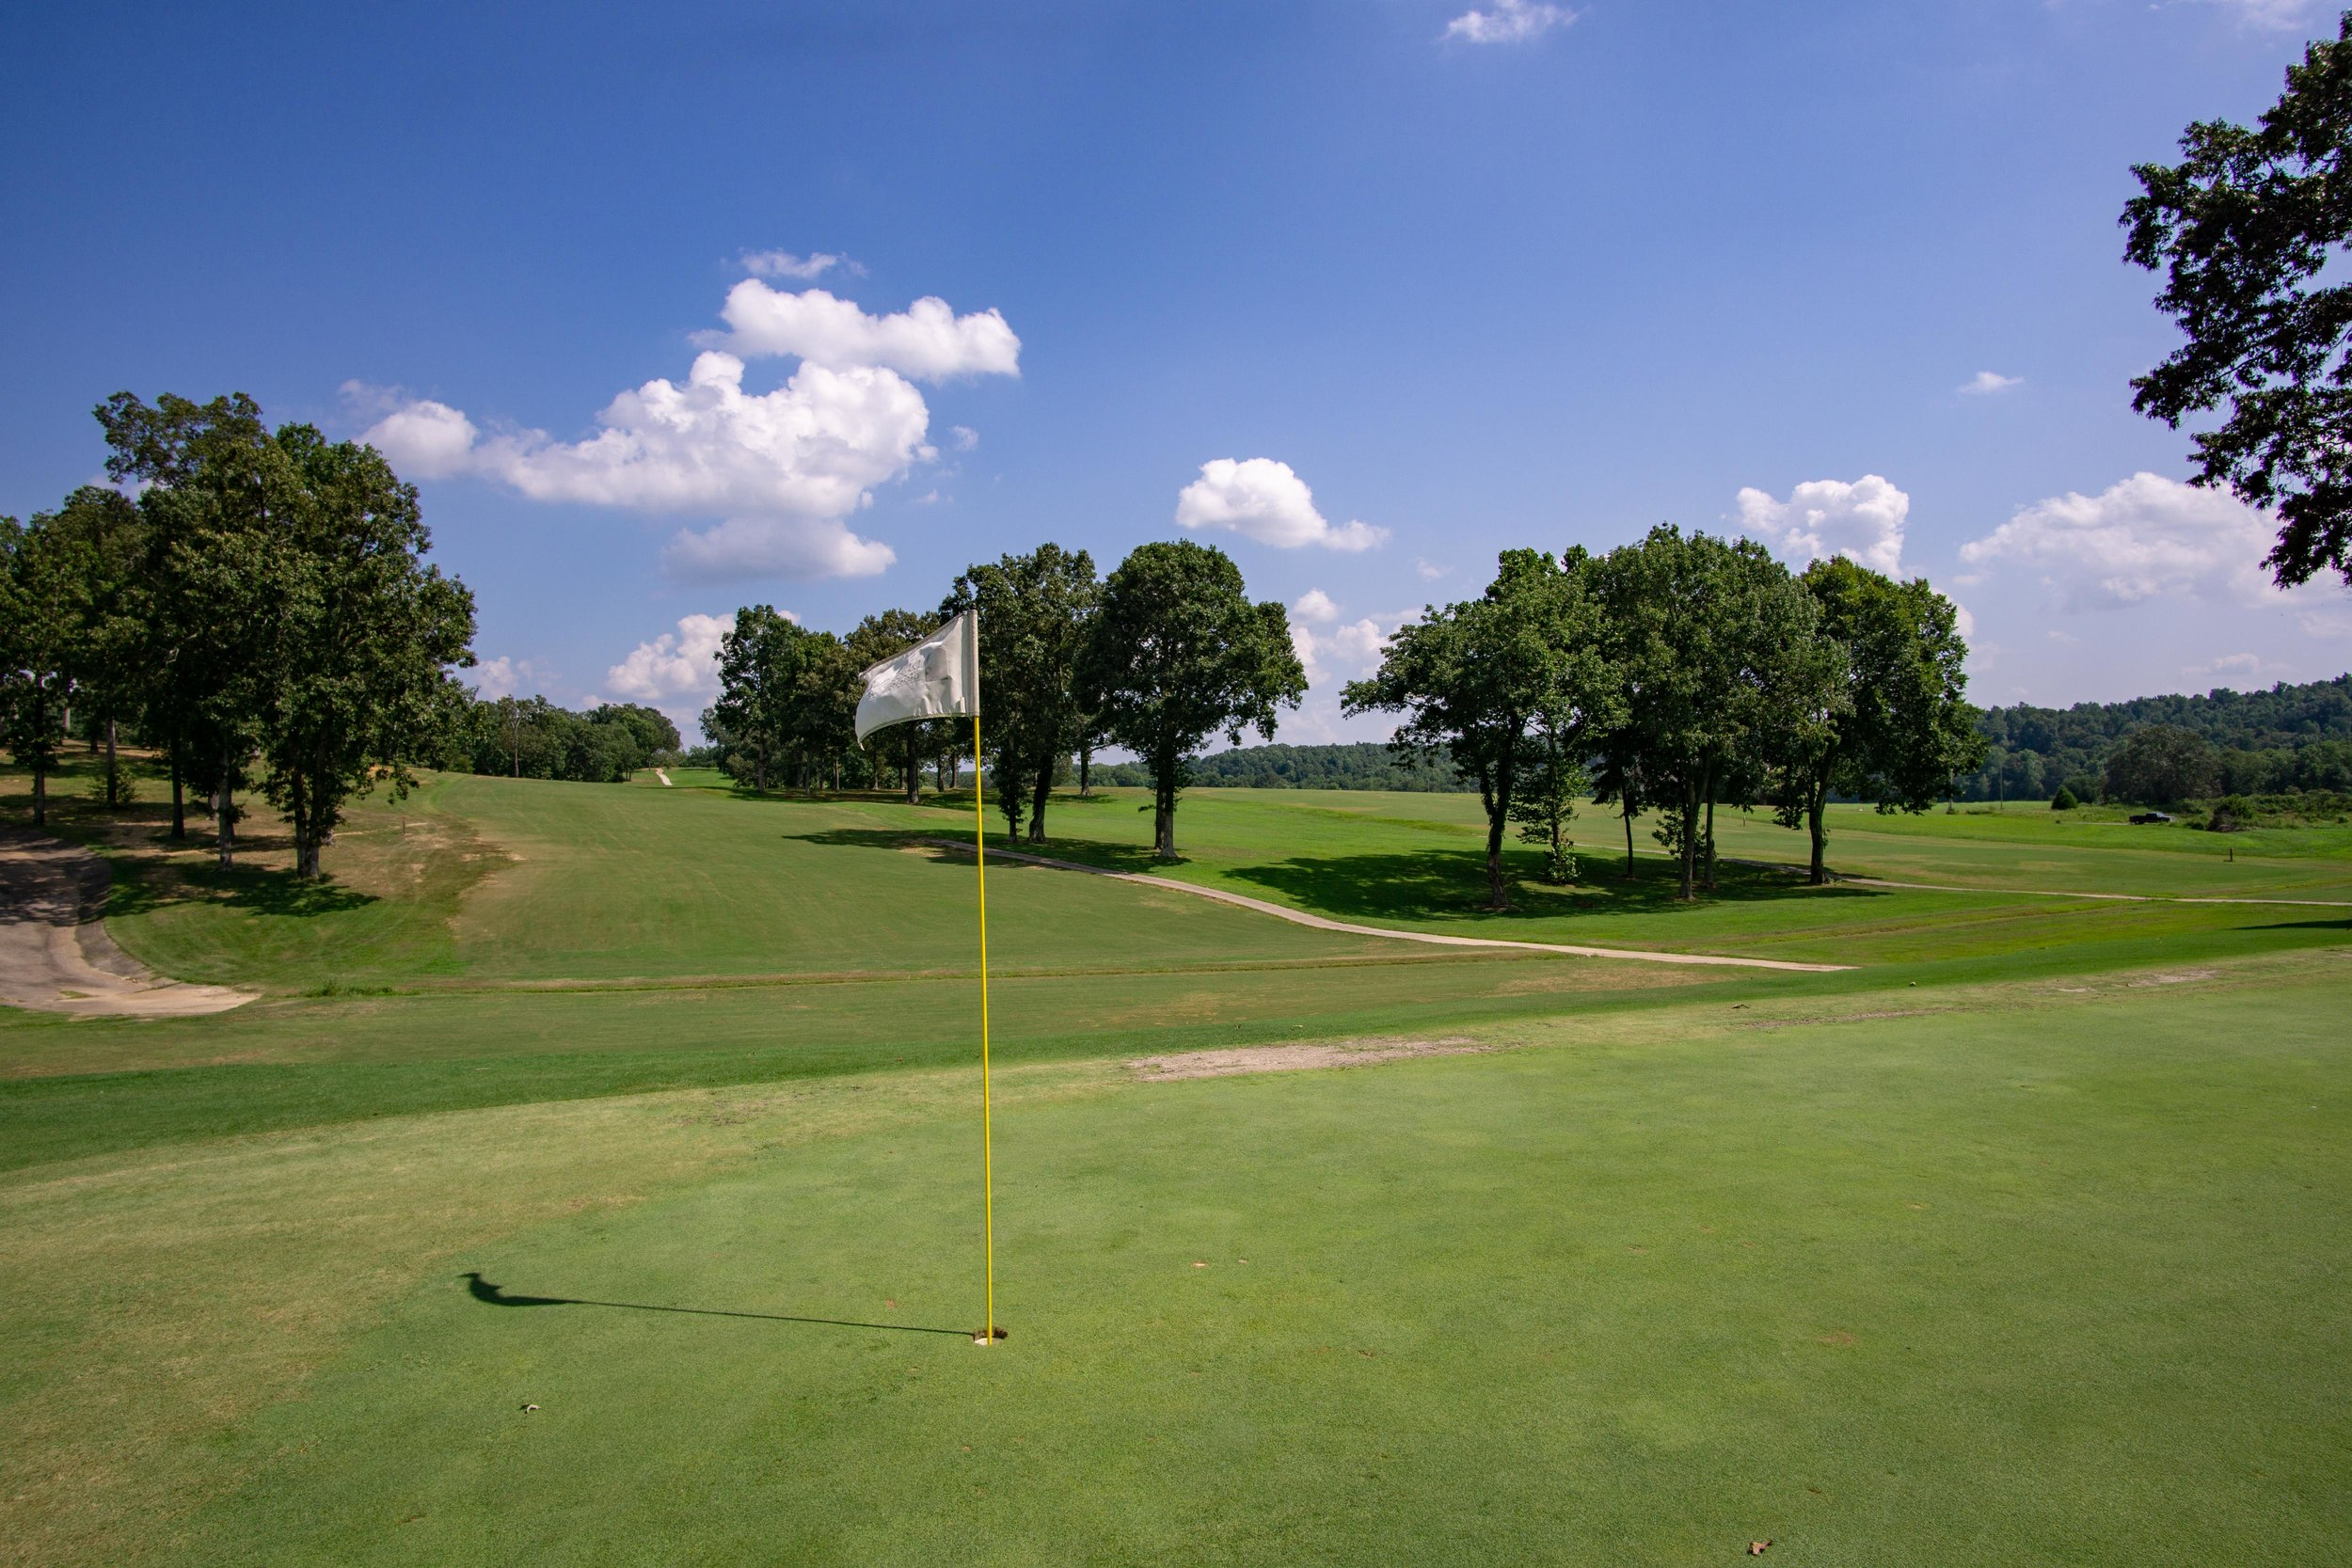 Dixie Oaks Golf Club Summertown TN Real Estate Photographer Pro -13.jpg